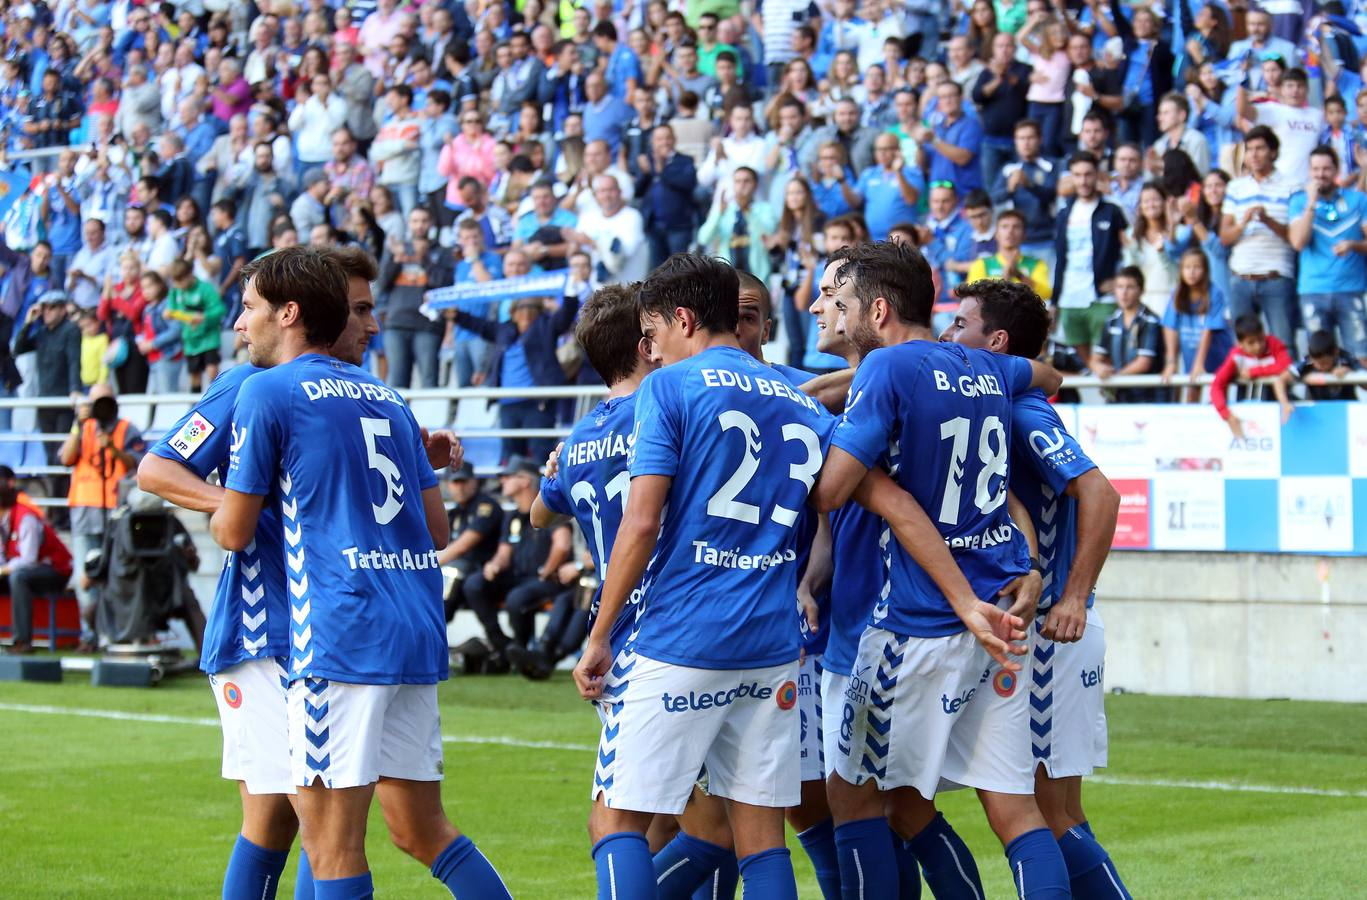 Real Oviedo 3-1 Albacete